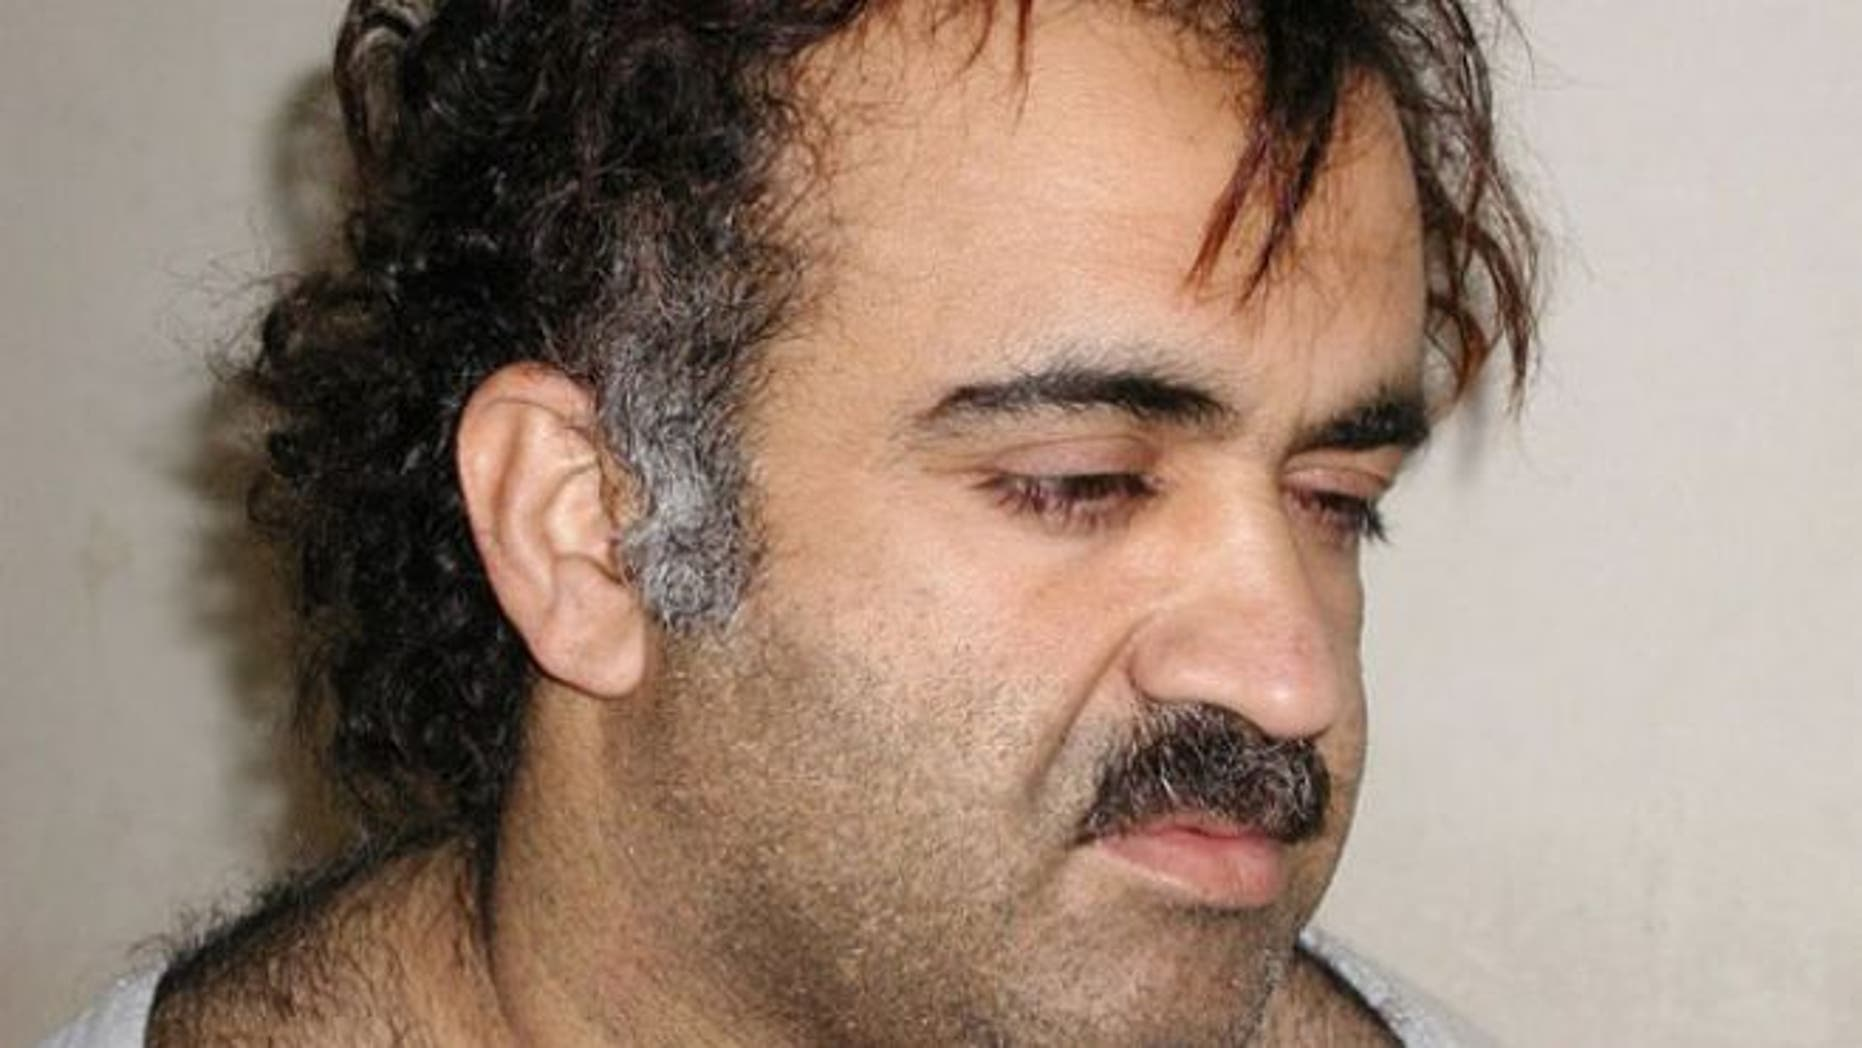 March 1, 2003: Khalid Sheikh Mohammed is shown in this file photograph during his arrest.